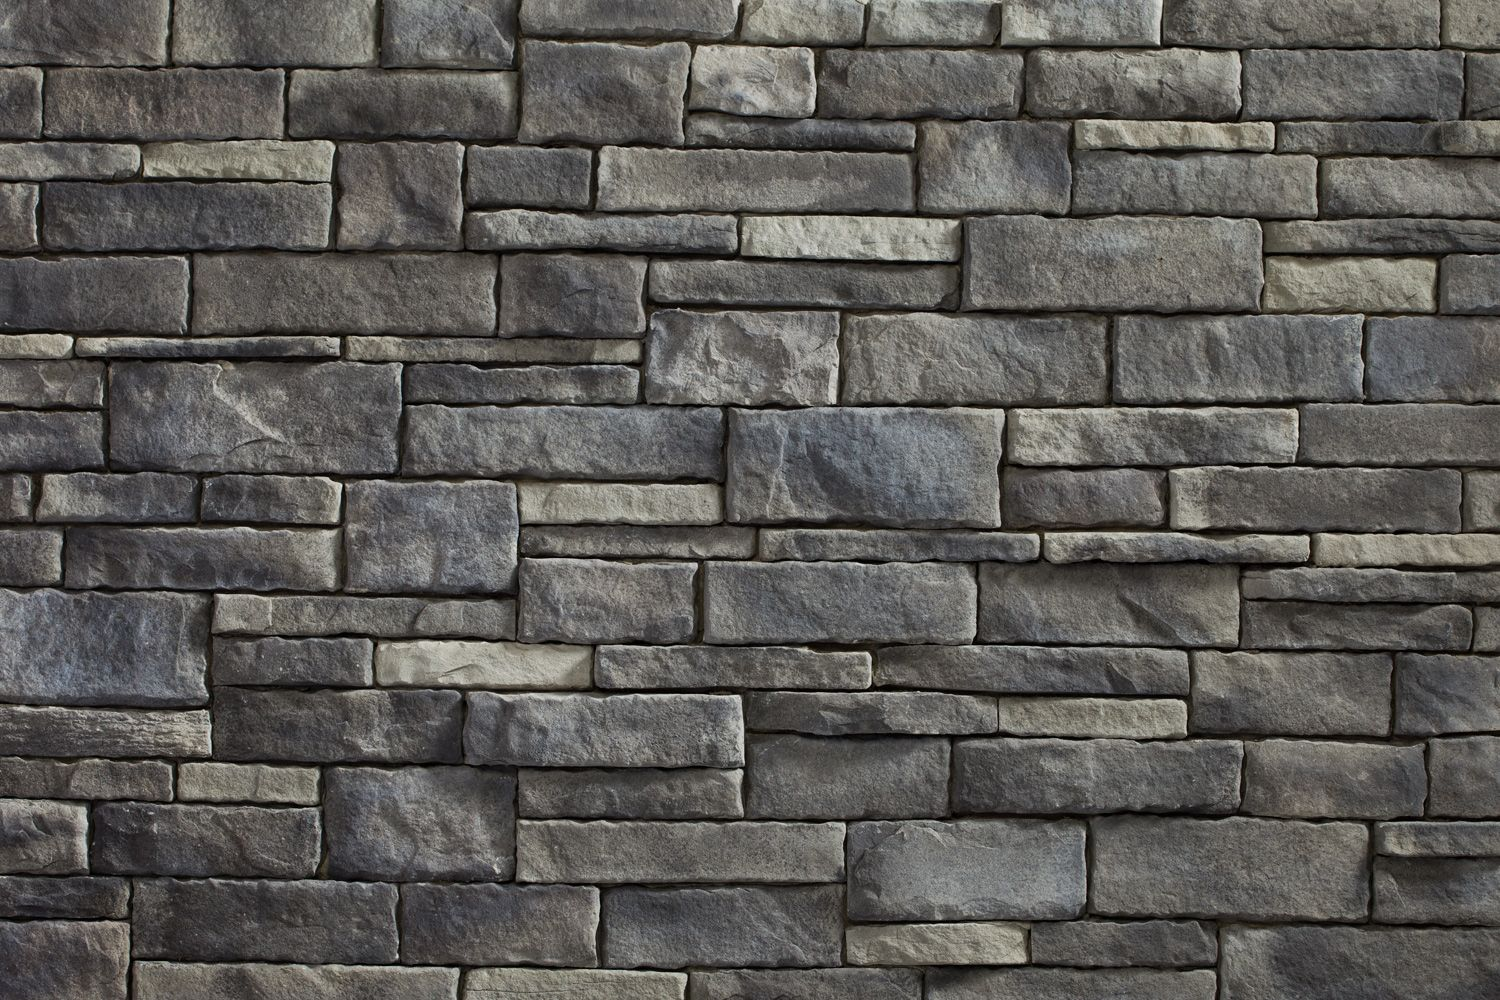 ProVia Offers A High Quality Selection Of Manufactured Stone Veneer That  Look More Like Natural Stone Than Other Stone Siding Products.